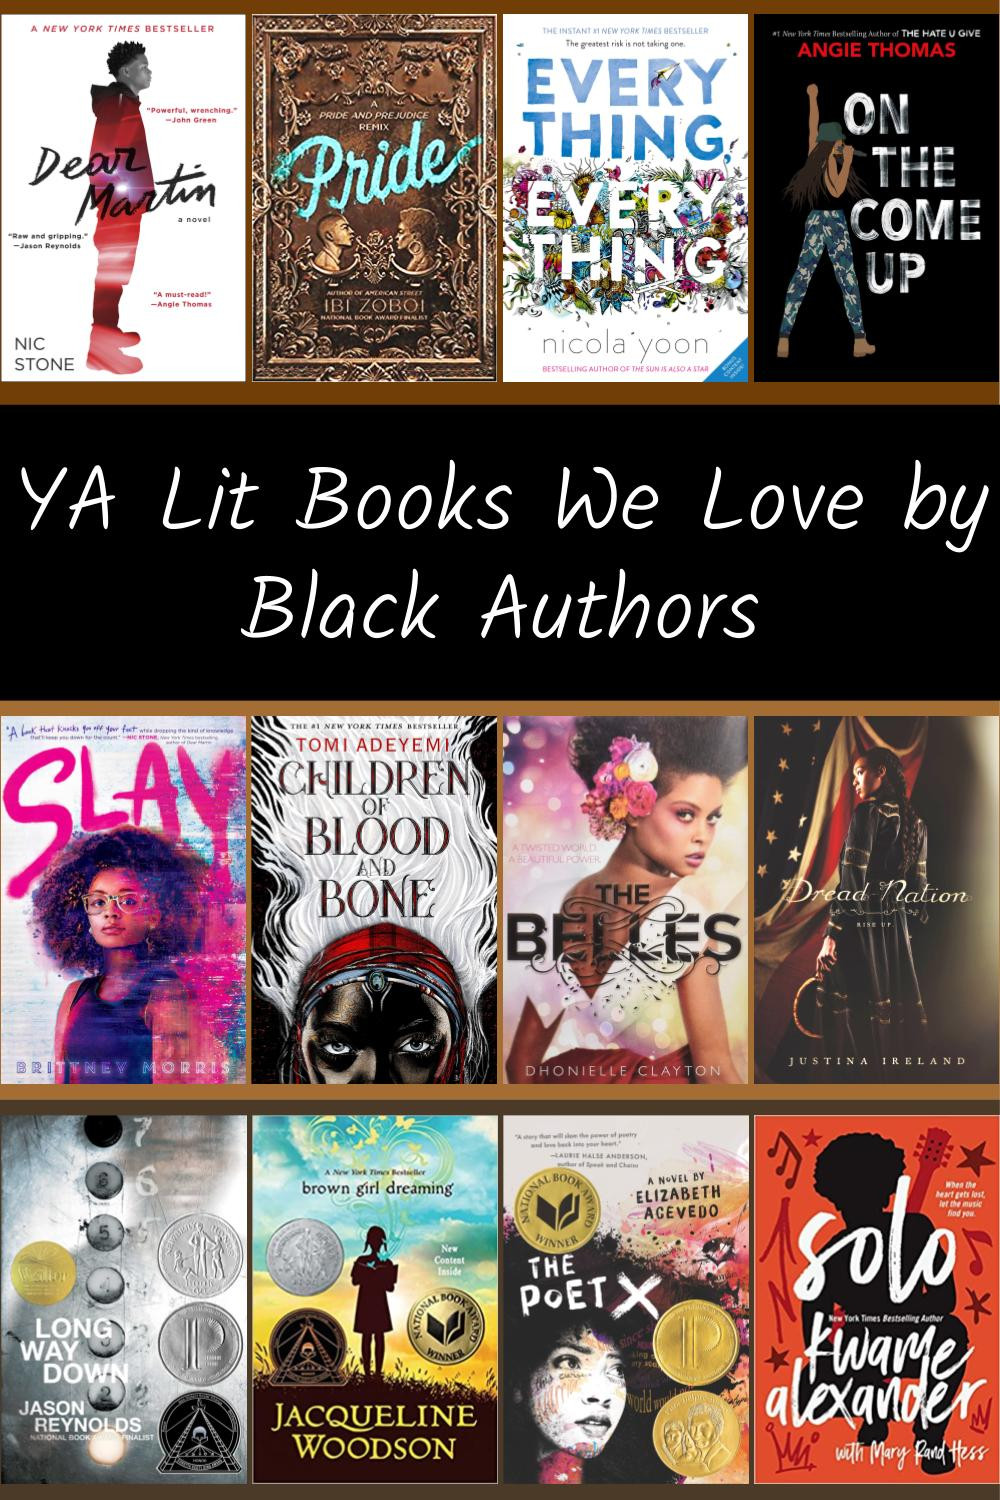 Collage of book covers of YA lit books written by Black authors